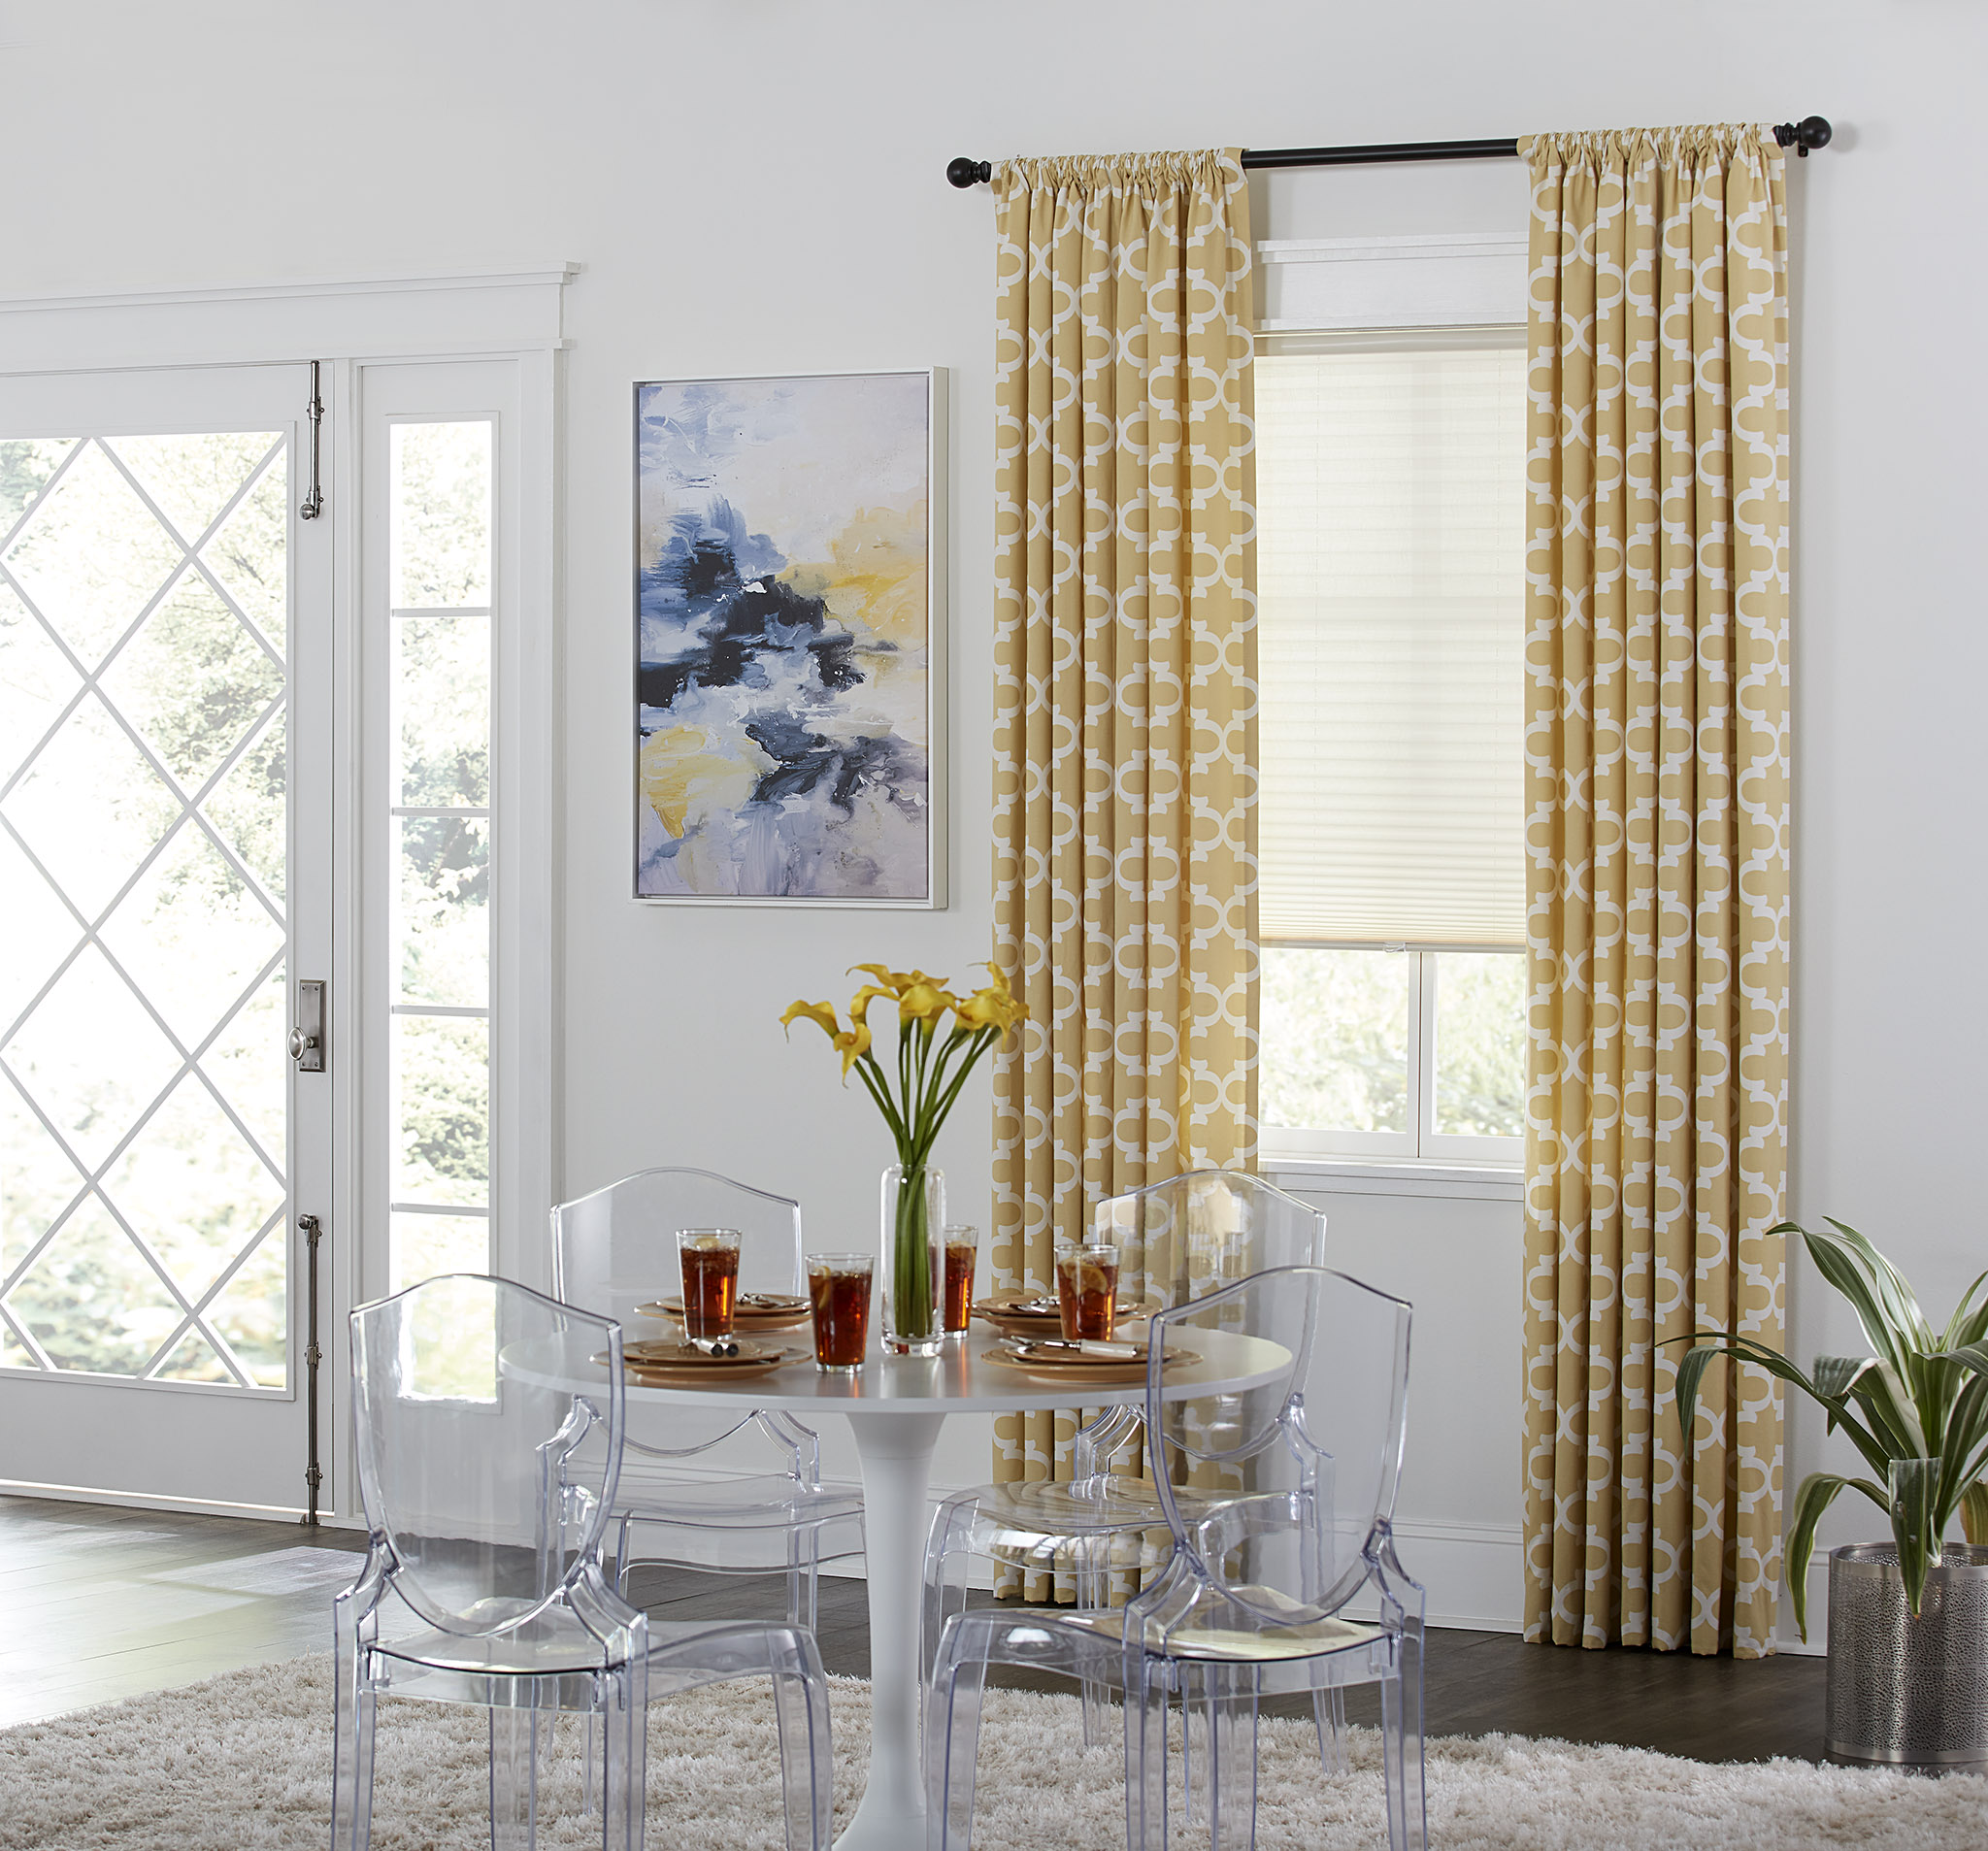 contemporary entryway with yellow draperies and beige cellular shades in the window.